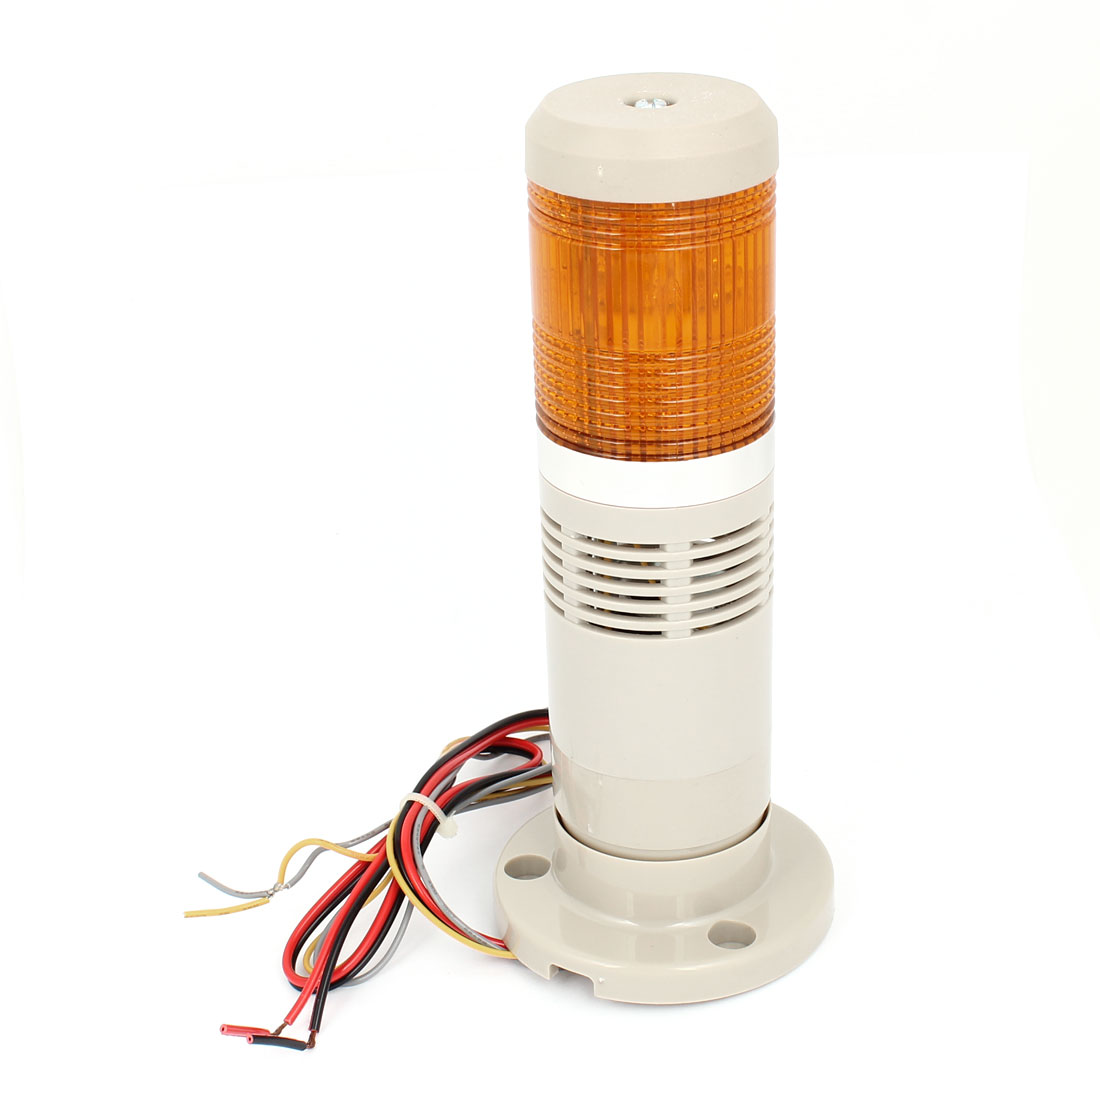 DC 24V Yellow LED Flash Industry Signal Tower Alarm Light Lamp